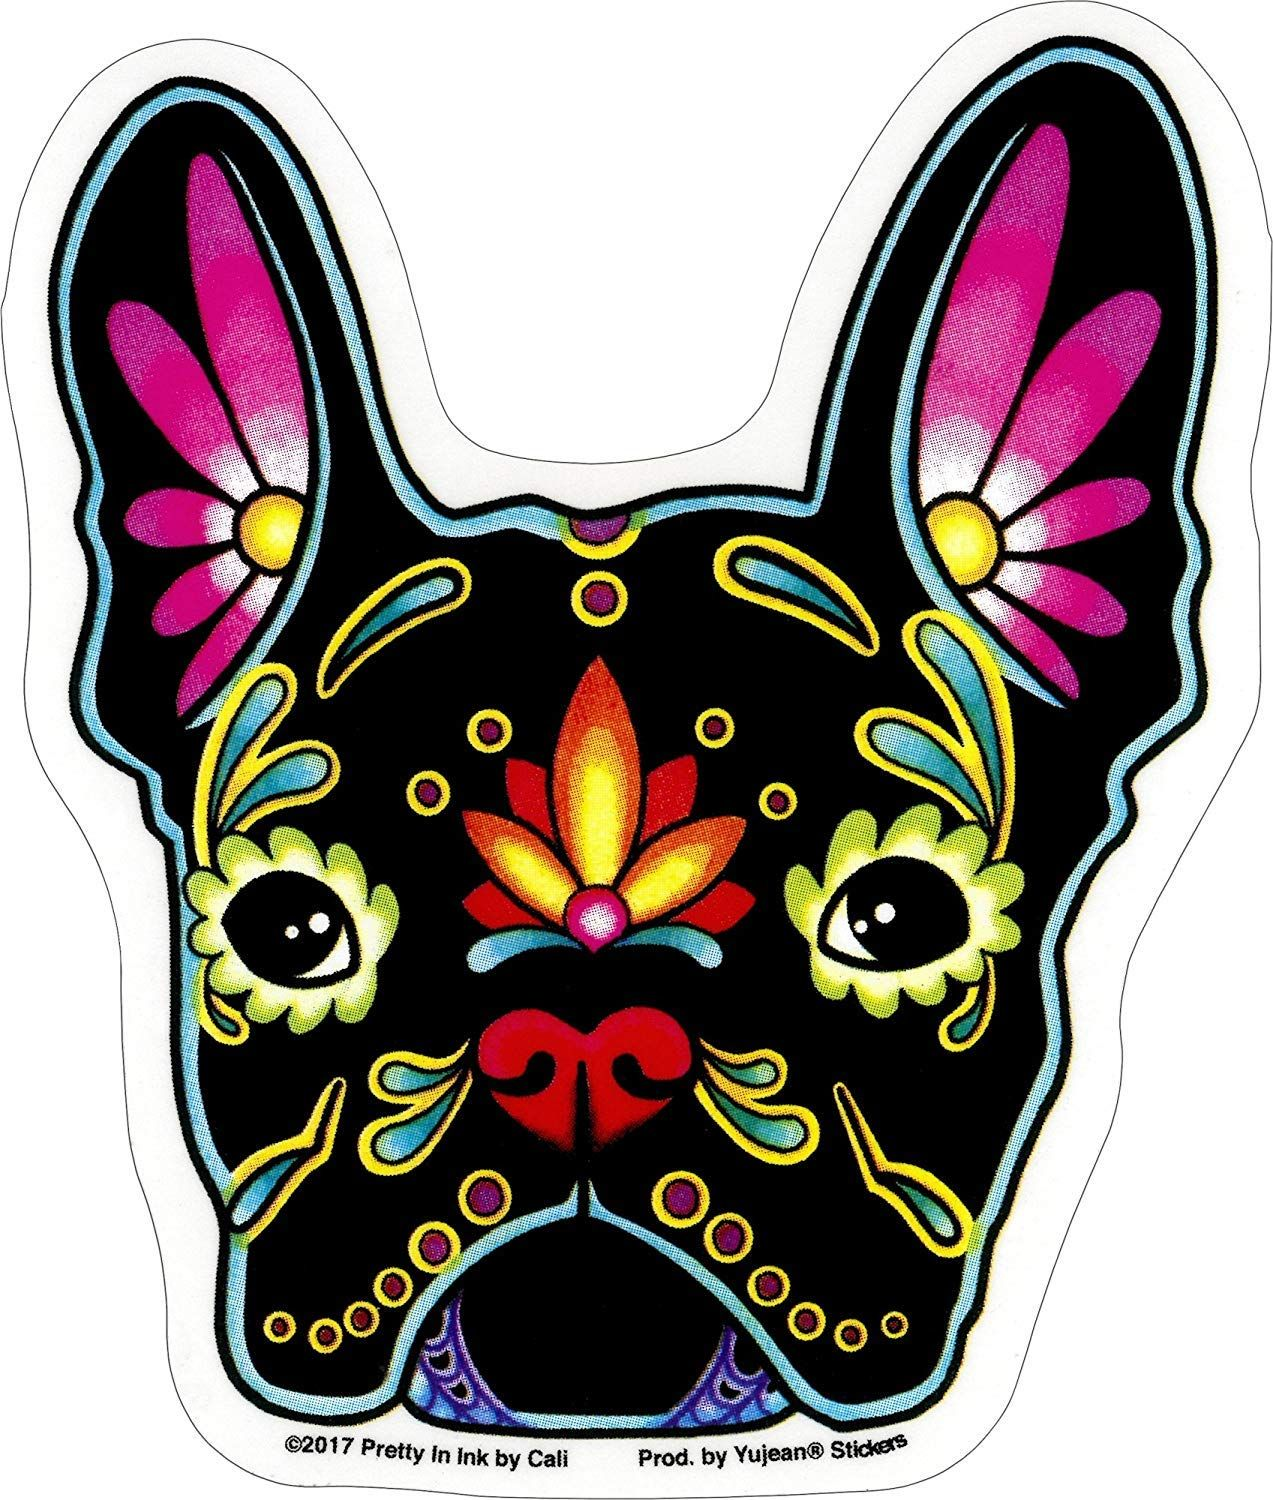 French Bulldog Sugar Skull Sticker From Amazon Click For Link